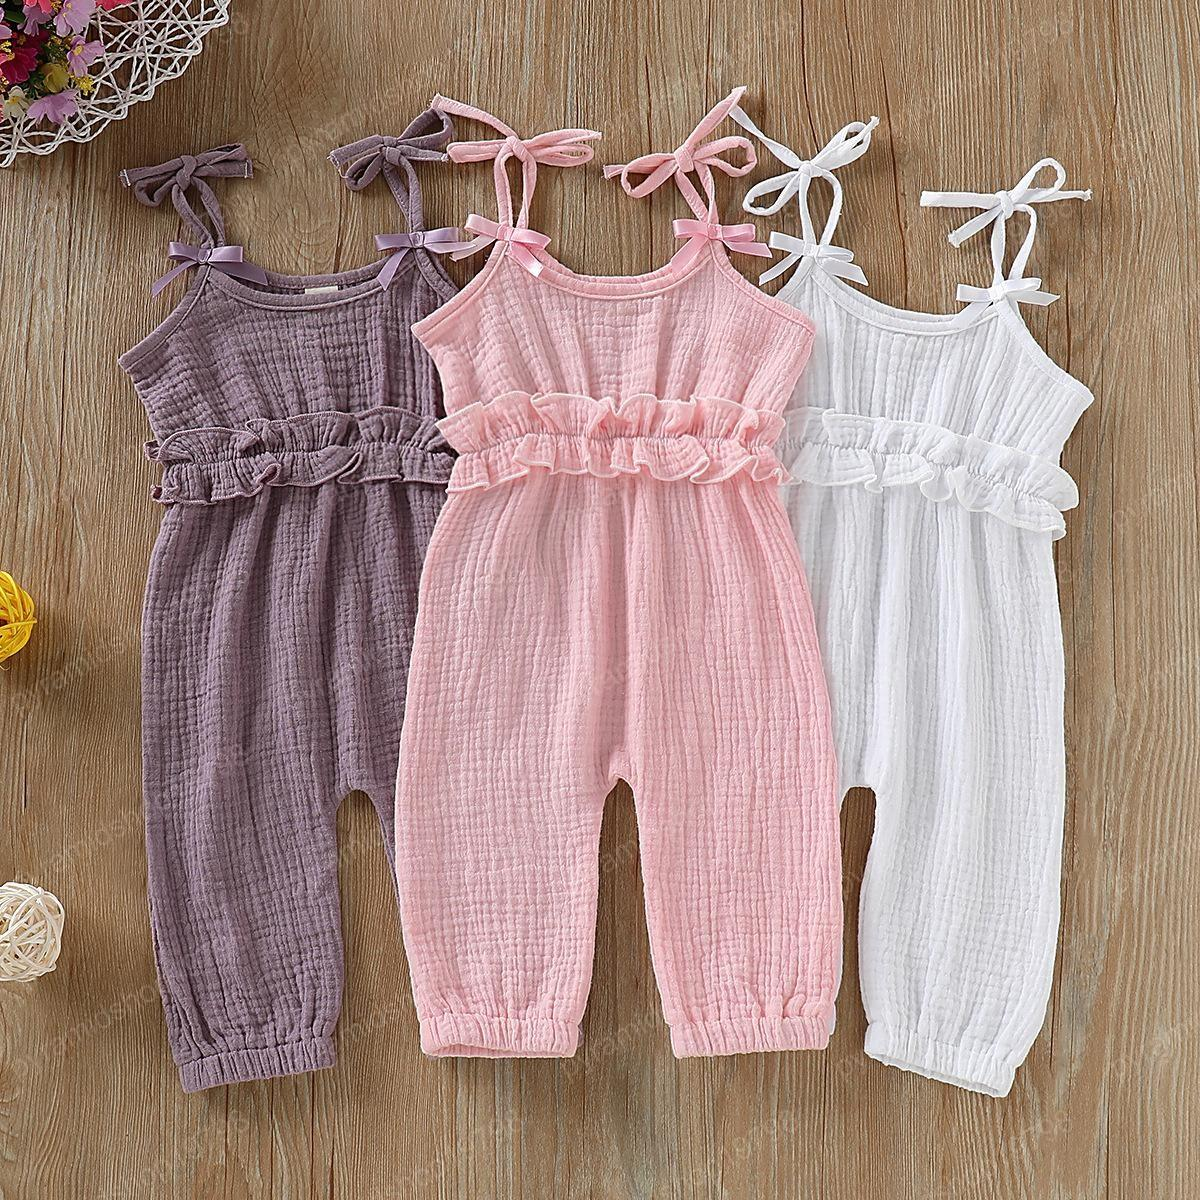 KIDSA Baby Toddler Girl Summer Romper Outfit Sleeveless Sling Soft Cotton Linen Jumpsuiut Clothes